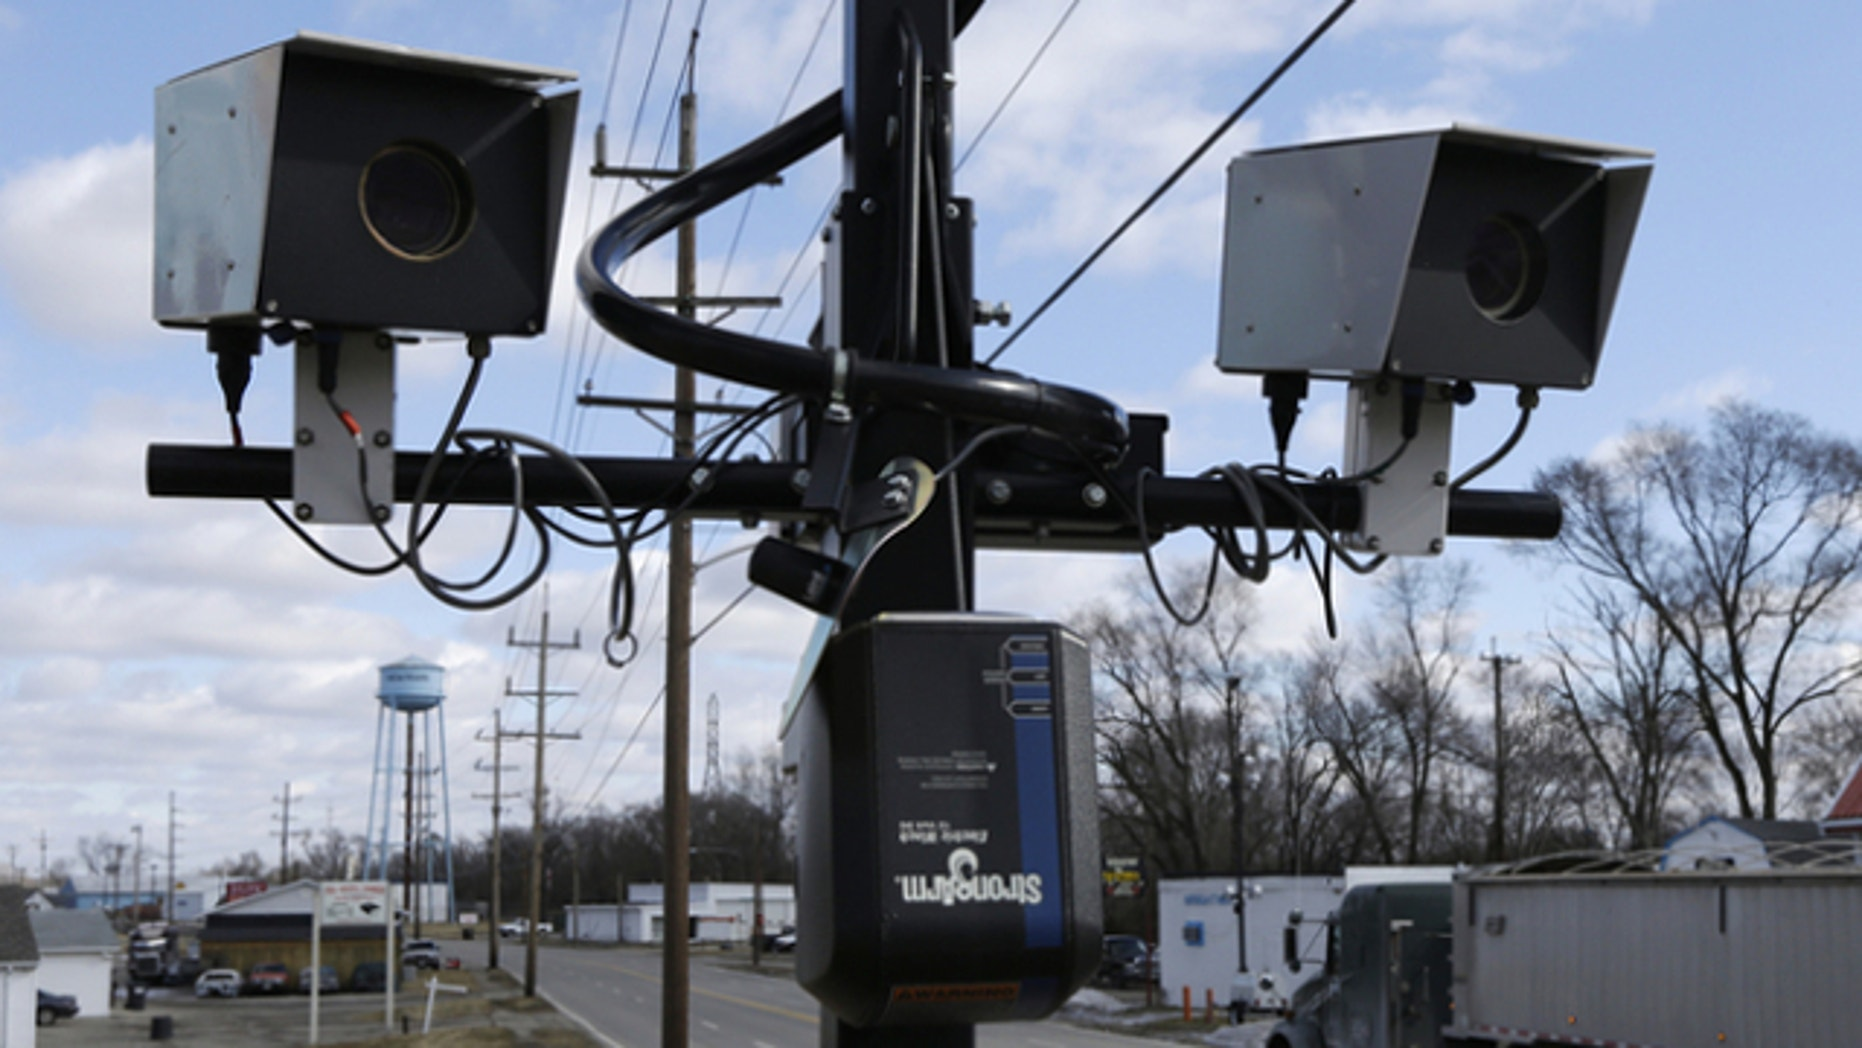 Feb. 25, 2014: Speeding cameras are aimed at traffic moving on US Route 127 in New Miami, Ohio.